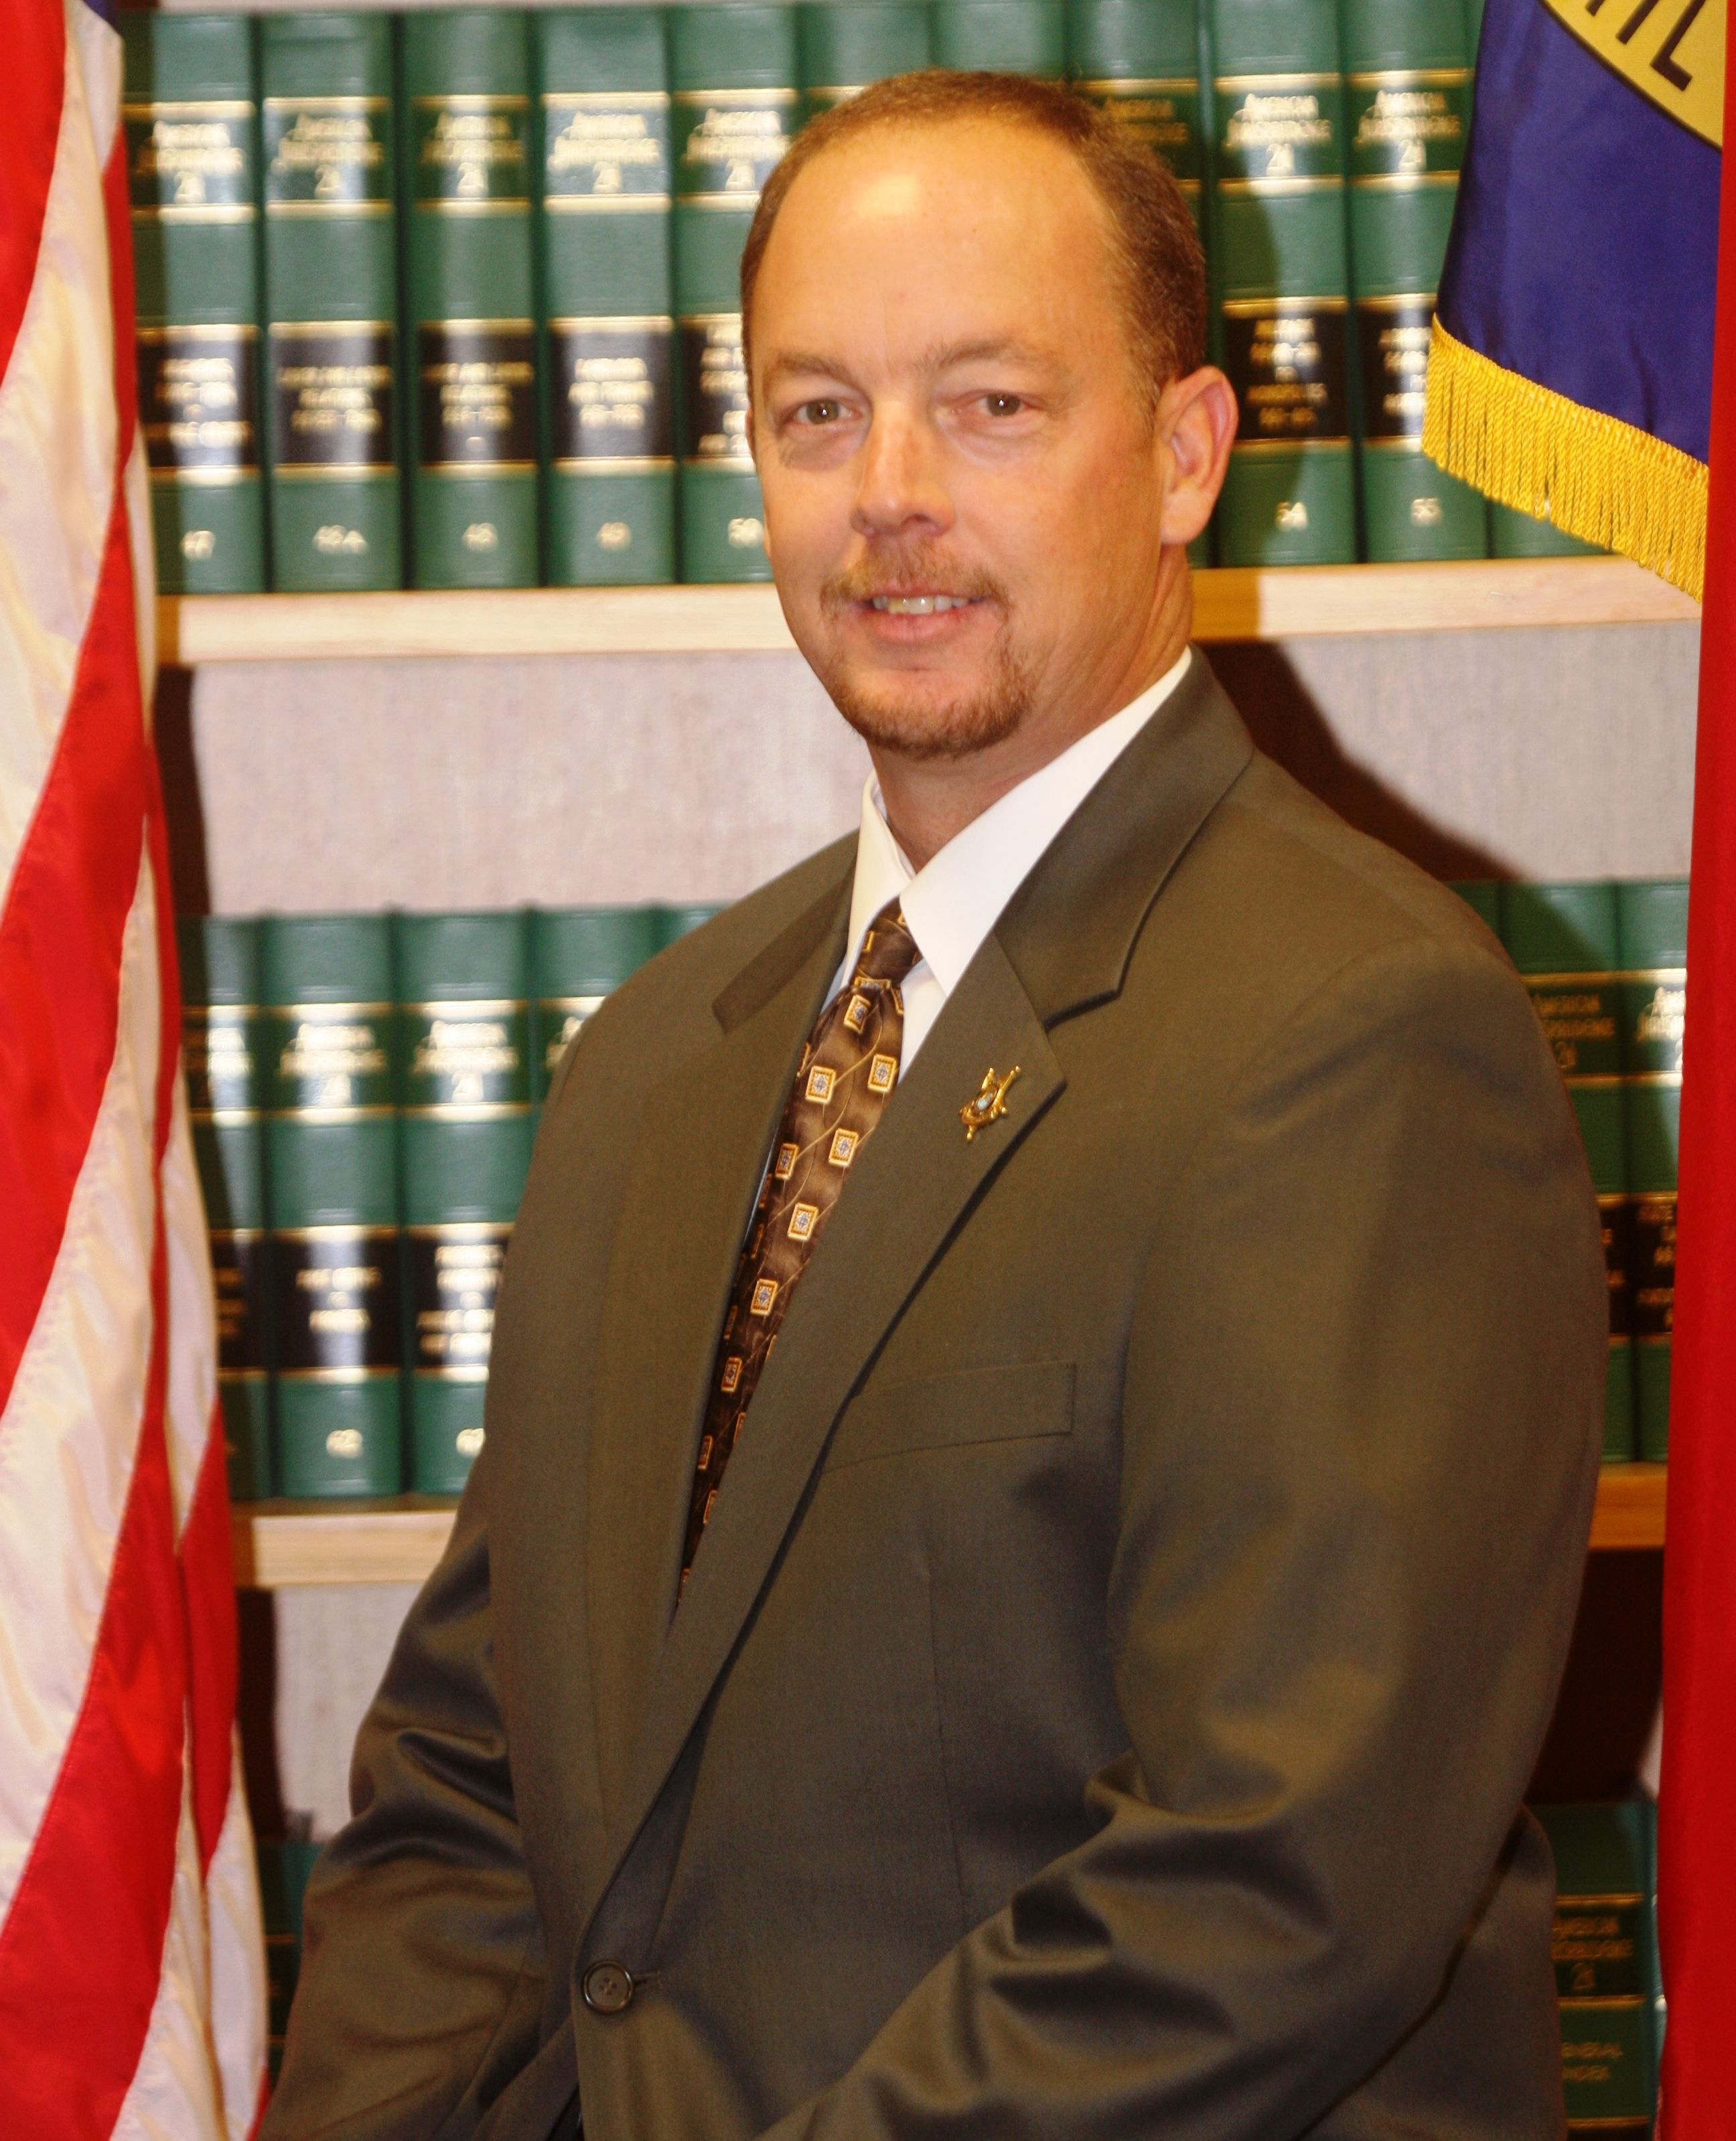 Sheriff Robert L. Holland - Macon County North Carolina